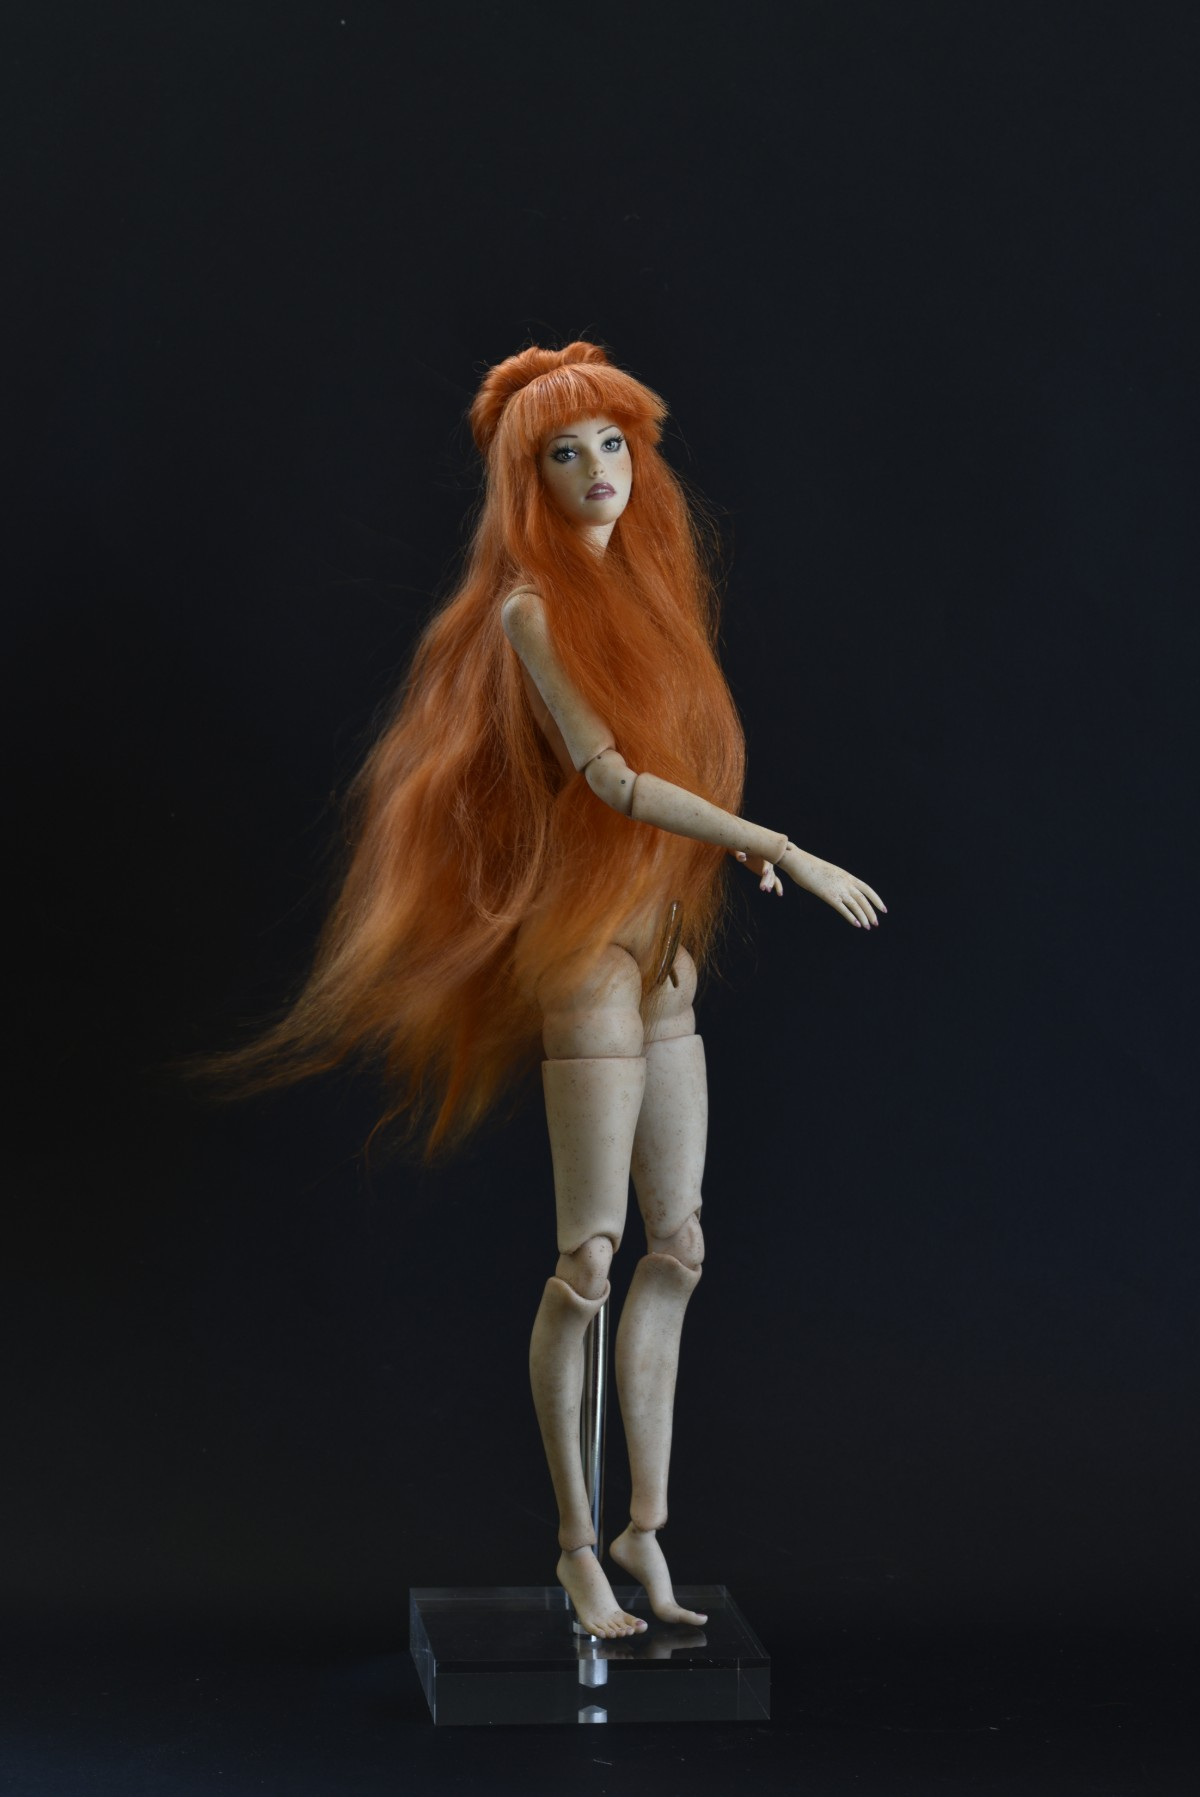 Ball Jointed Doll - Le Carotine